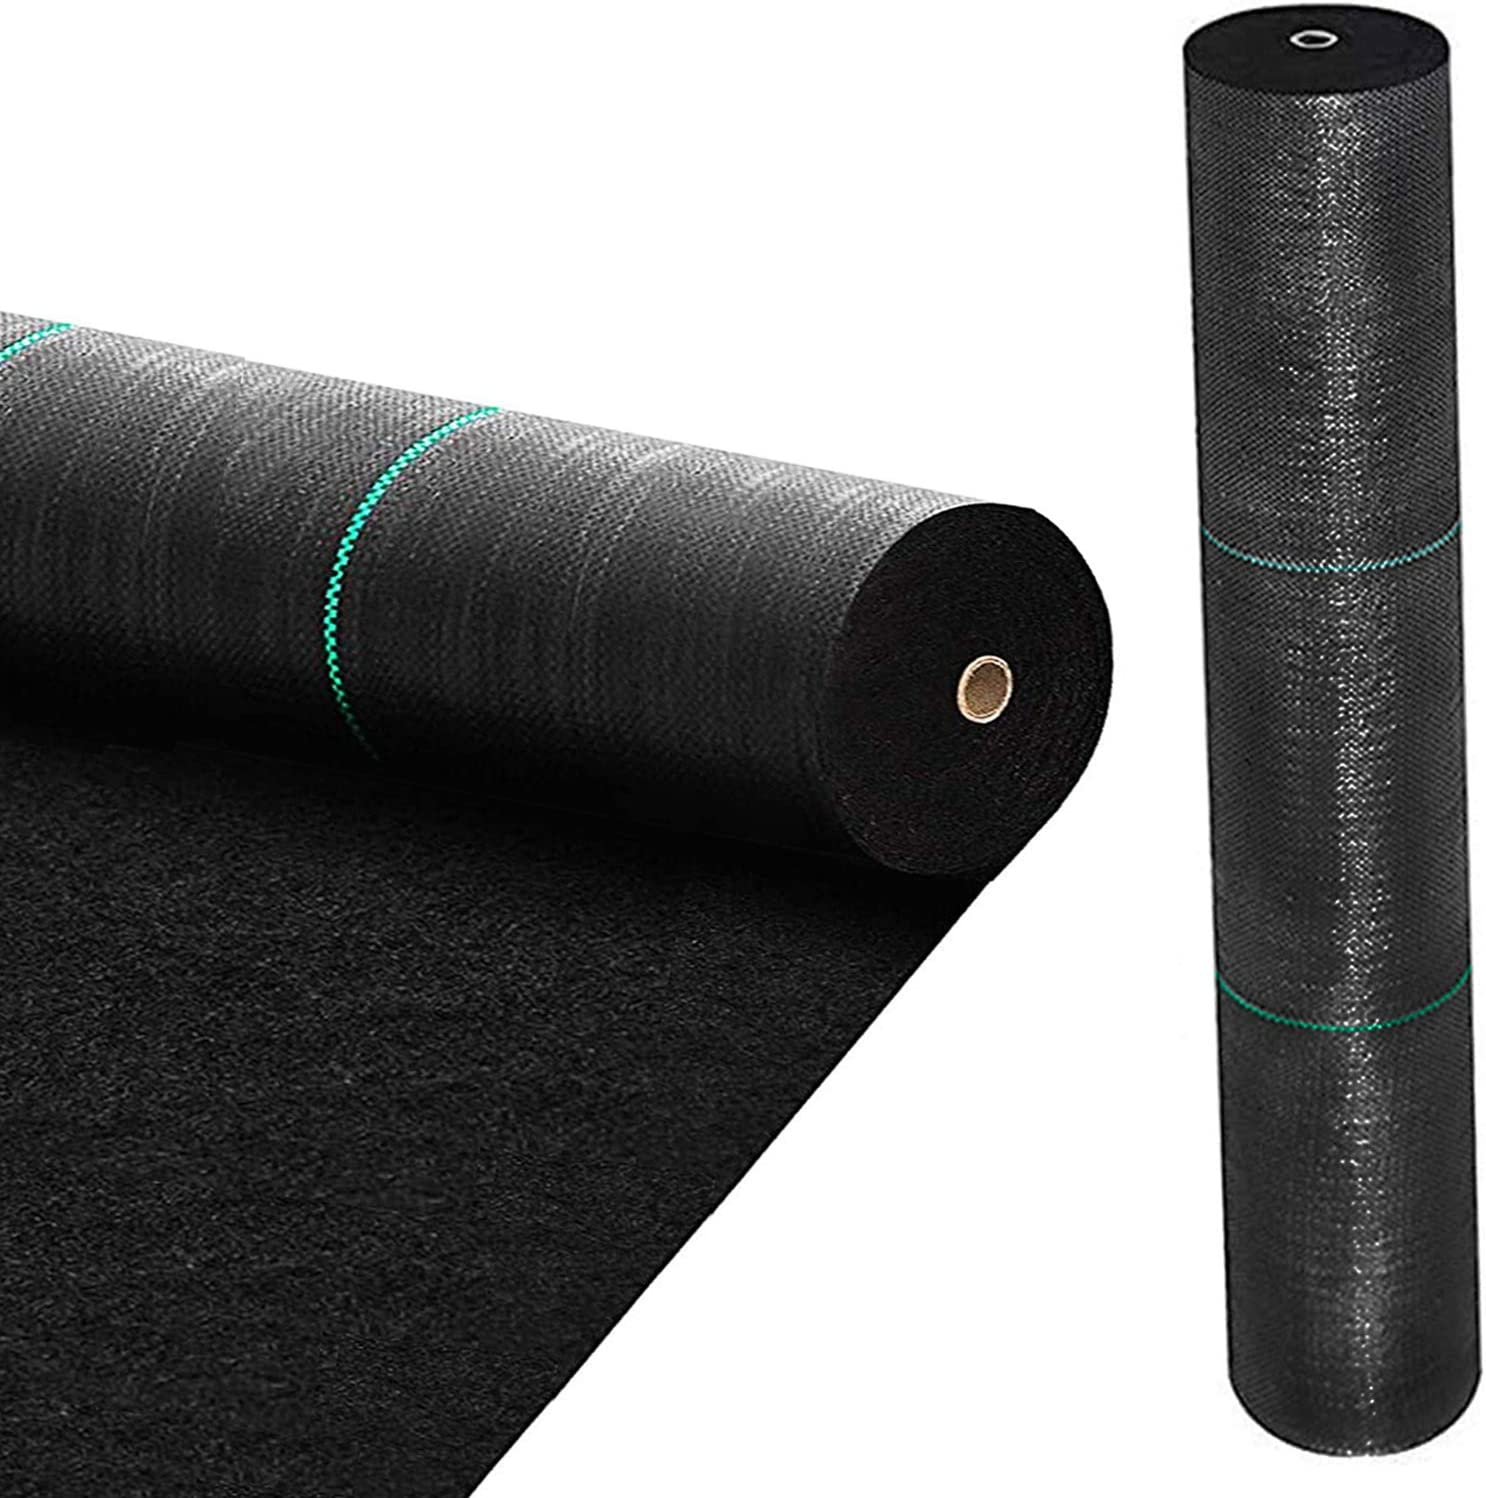 BOTINDO 5oz 3ft x 50ft Weed Barrier Landscape Fabric, Pro Garden Premium Heavy Duty Block Gardening Mat, Dual Layer Fabric Ground Cove Lawn Cloth, Weed Control for Landscaping Outdoor Driveway, Black